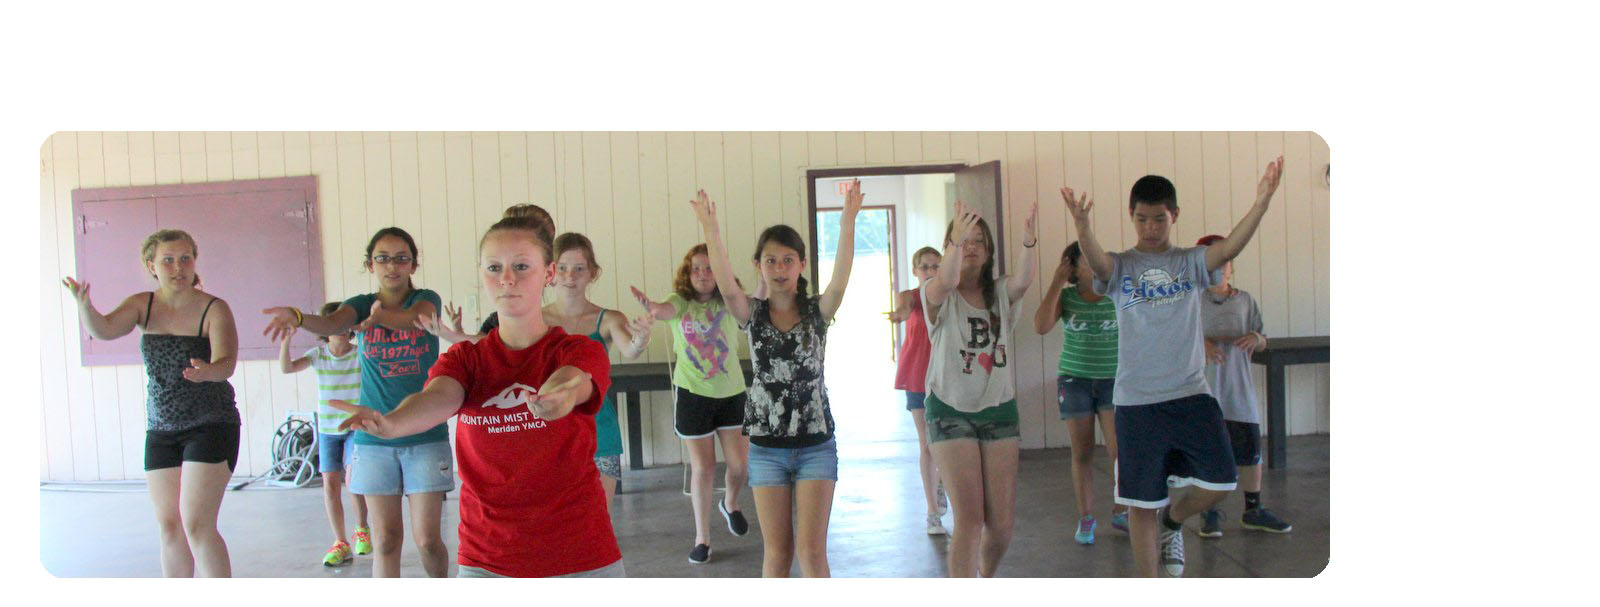 Chantel teaching at Musical Theater Camp